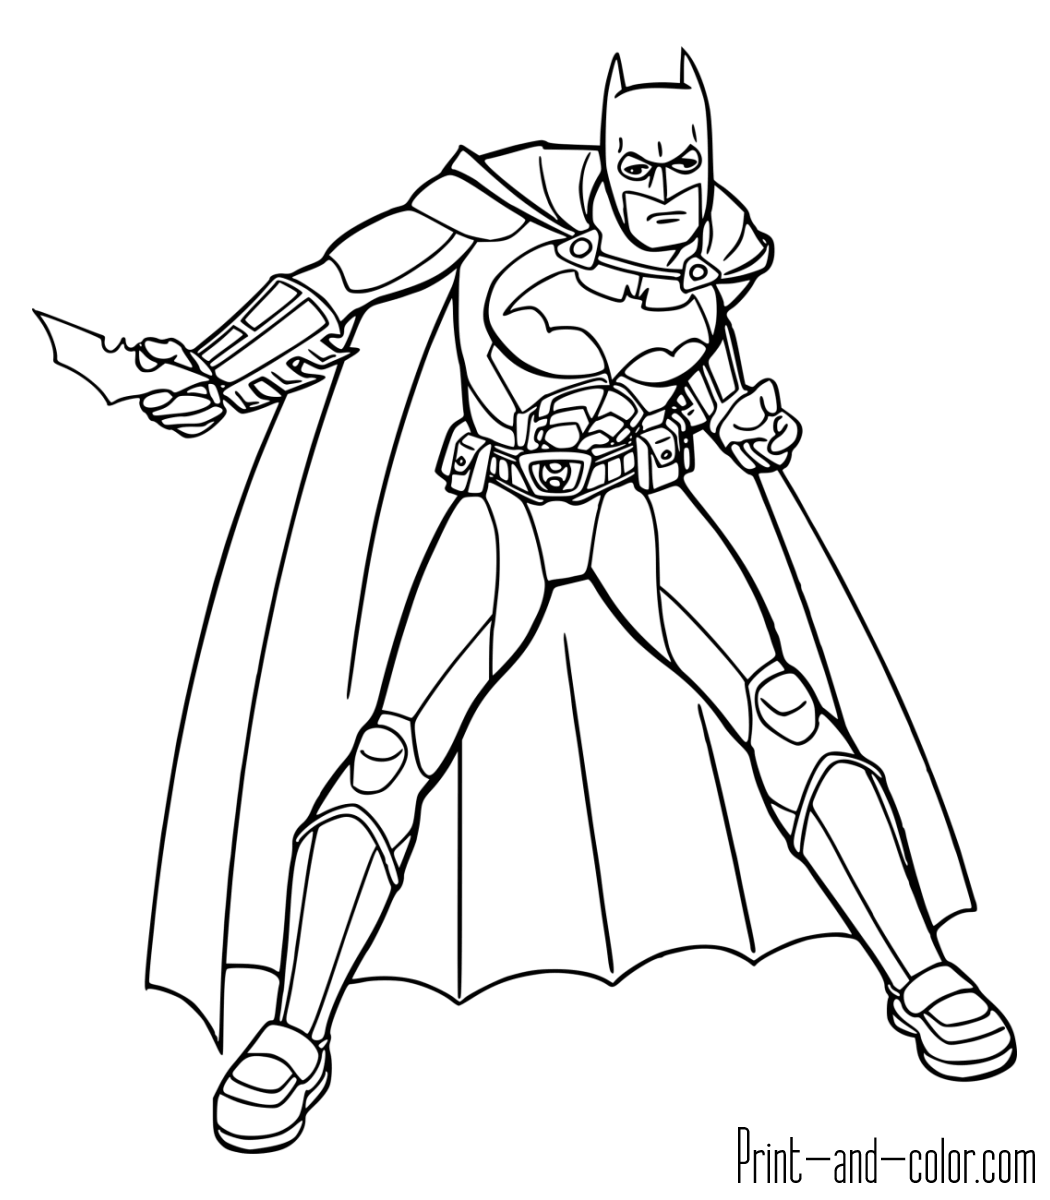 Batman coloring sheets printable